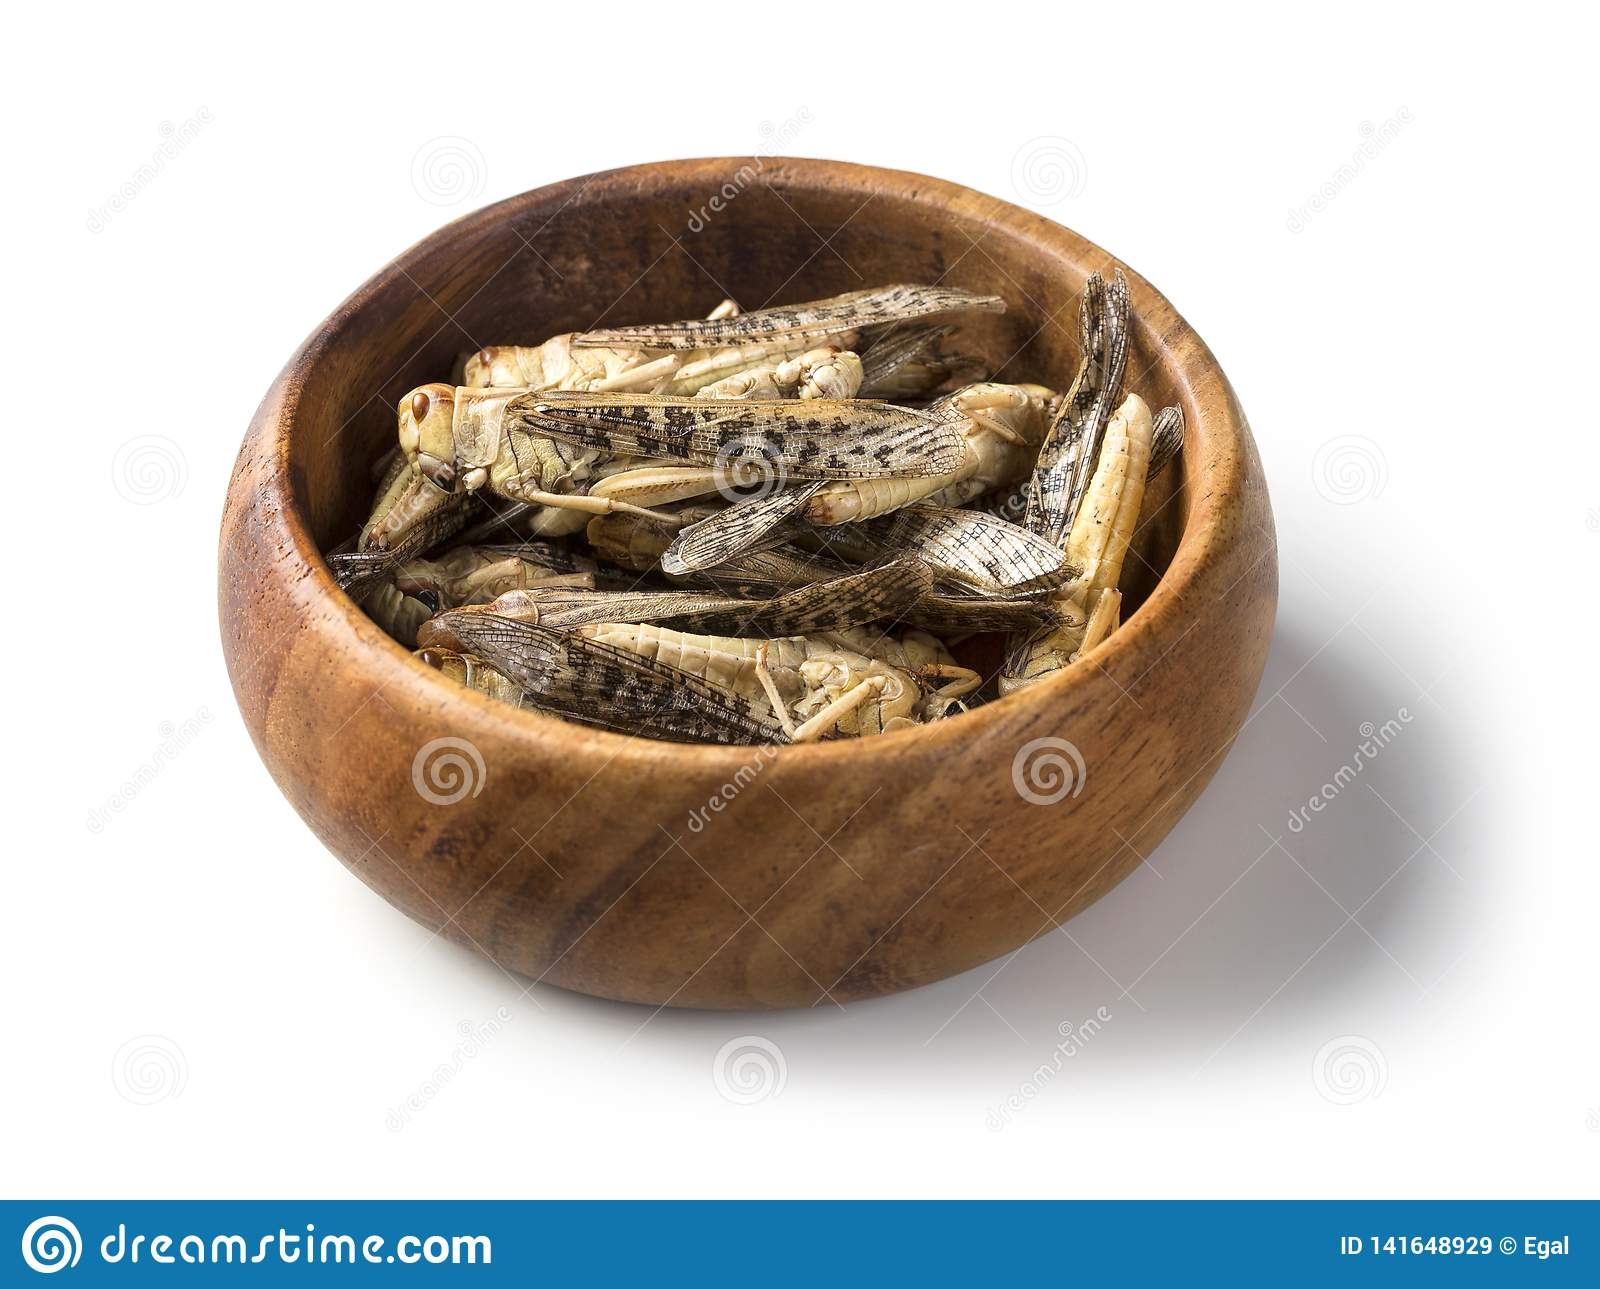 Edible grasshoppers in a wooden bowl